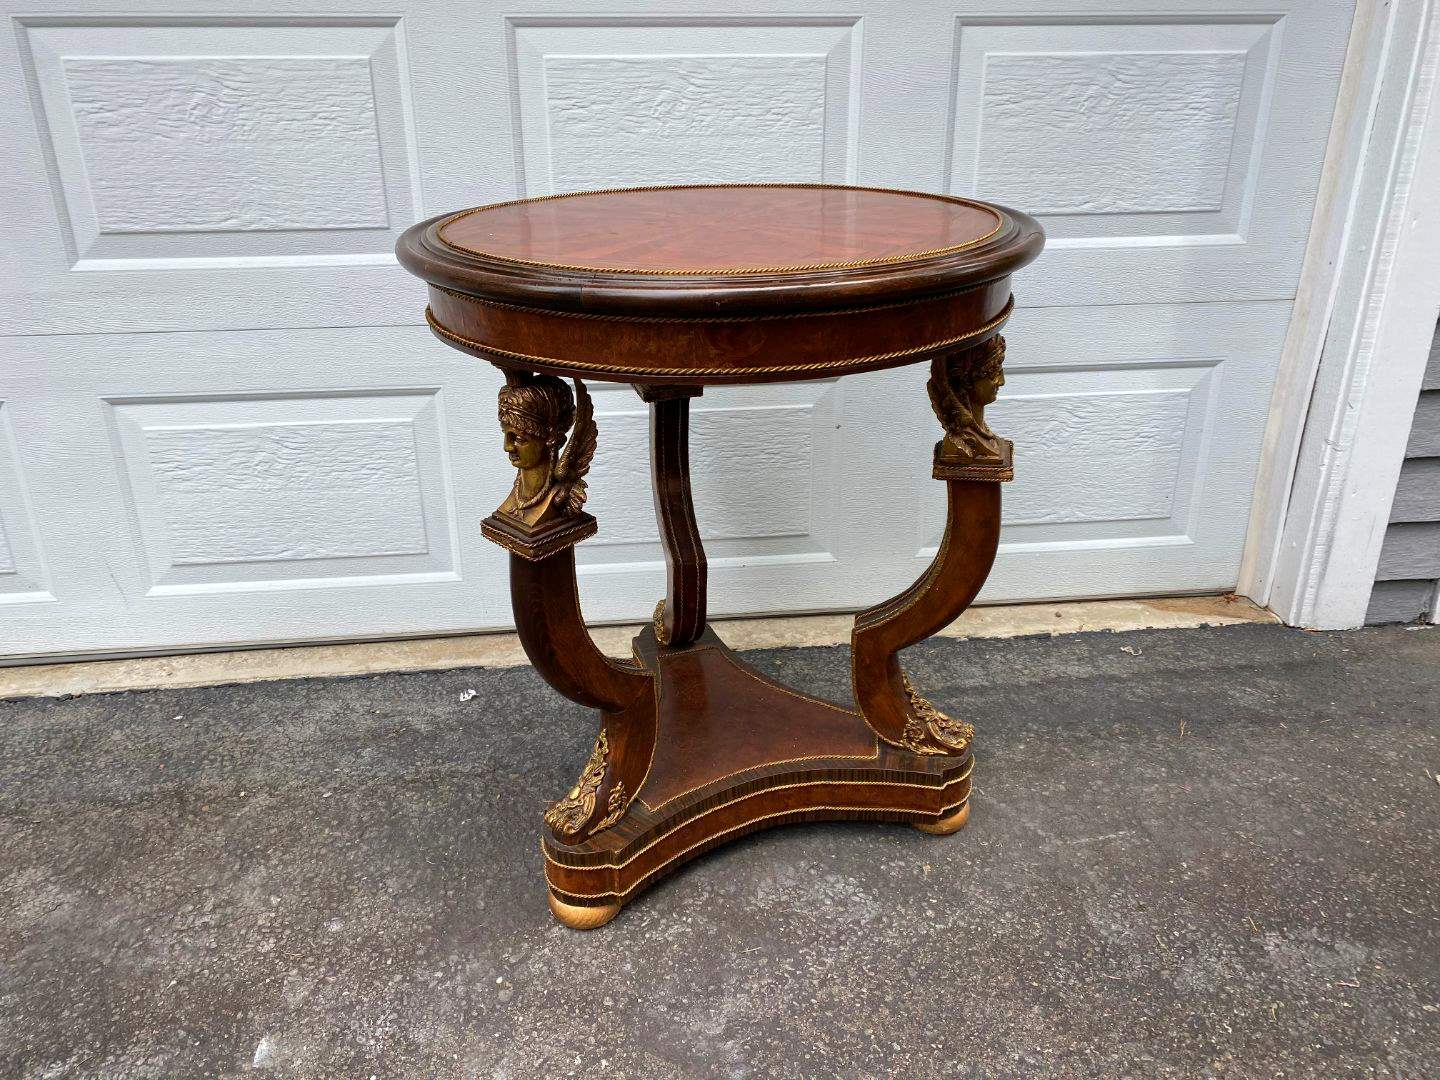 Lot # 311 - Vintage French Louis XV Style Table w/Brass Accents (main image)